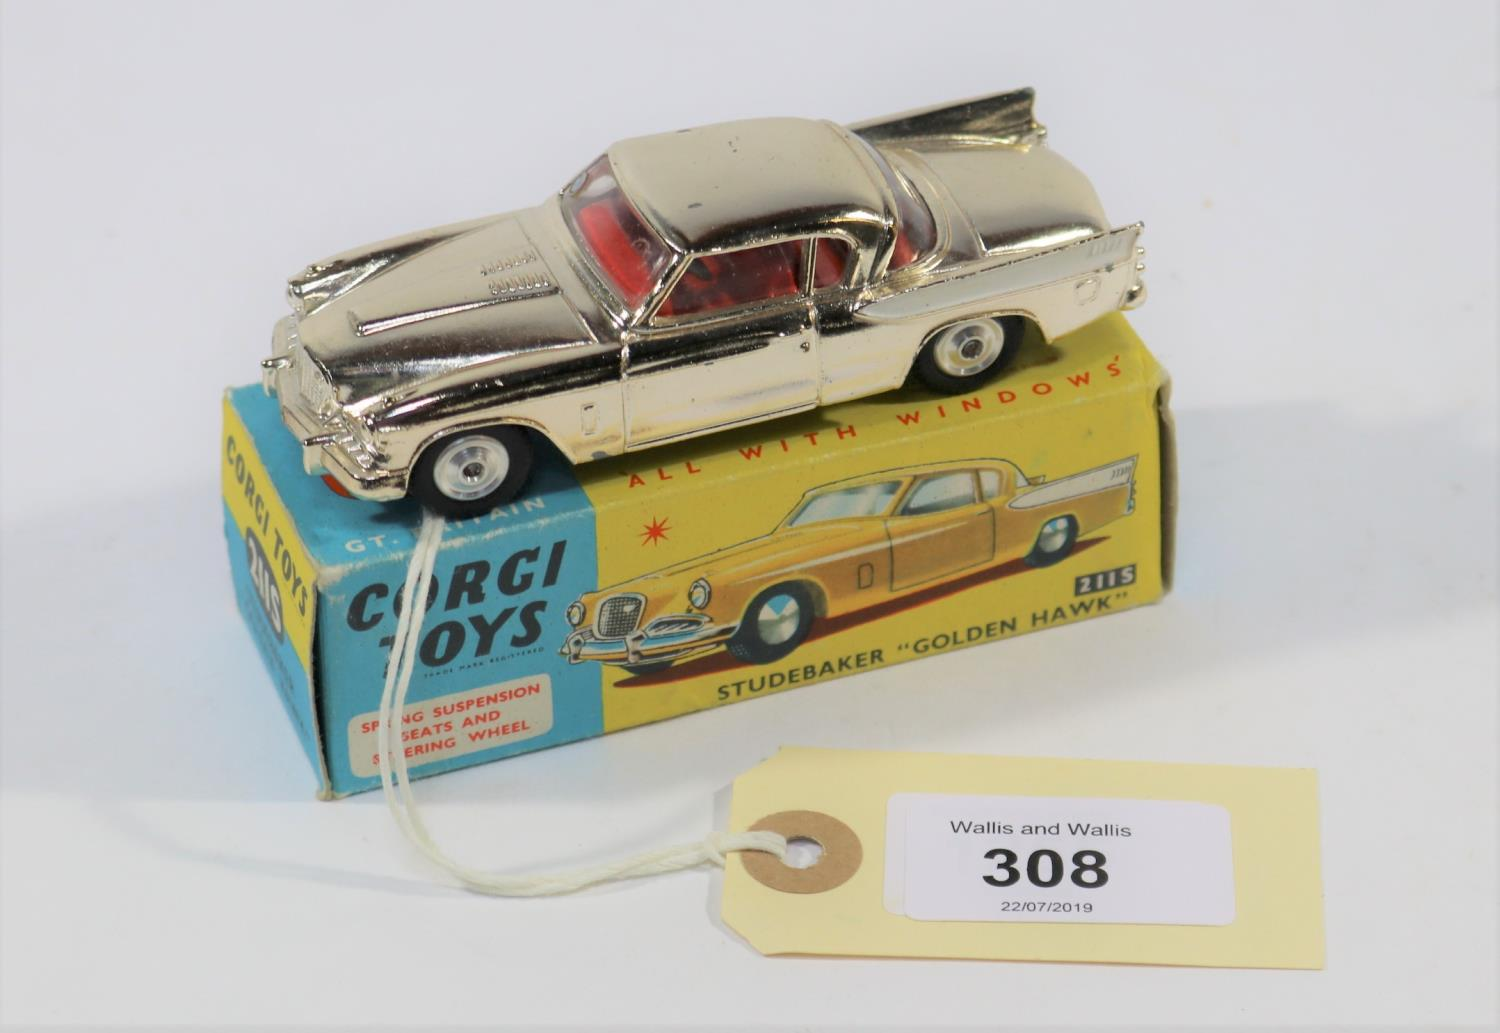 Lot 308 - Corgi Toys Studebaker Golden Hawk (211S). In gold wash vacuum plated finish, with white flash and